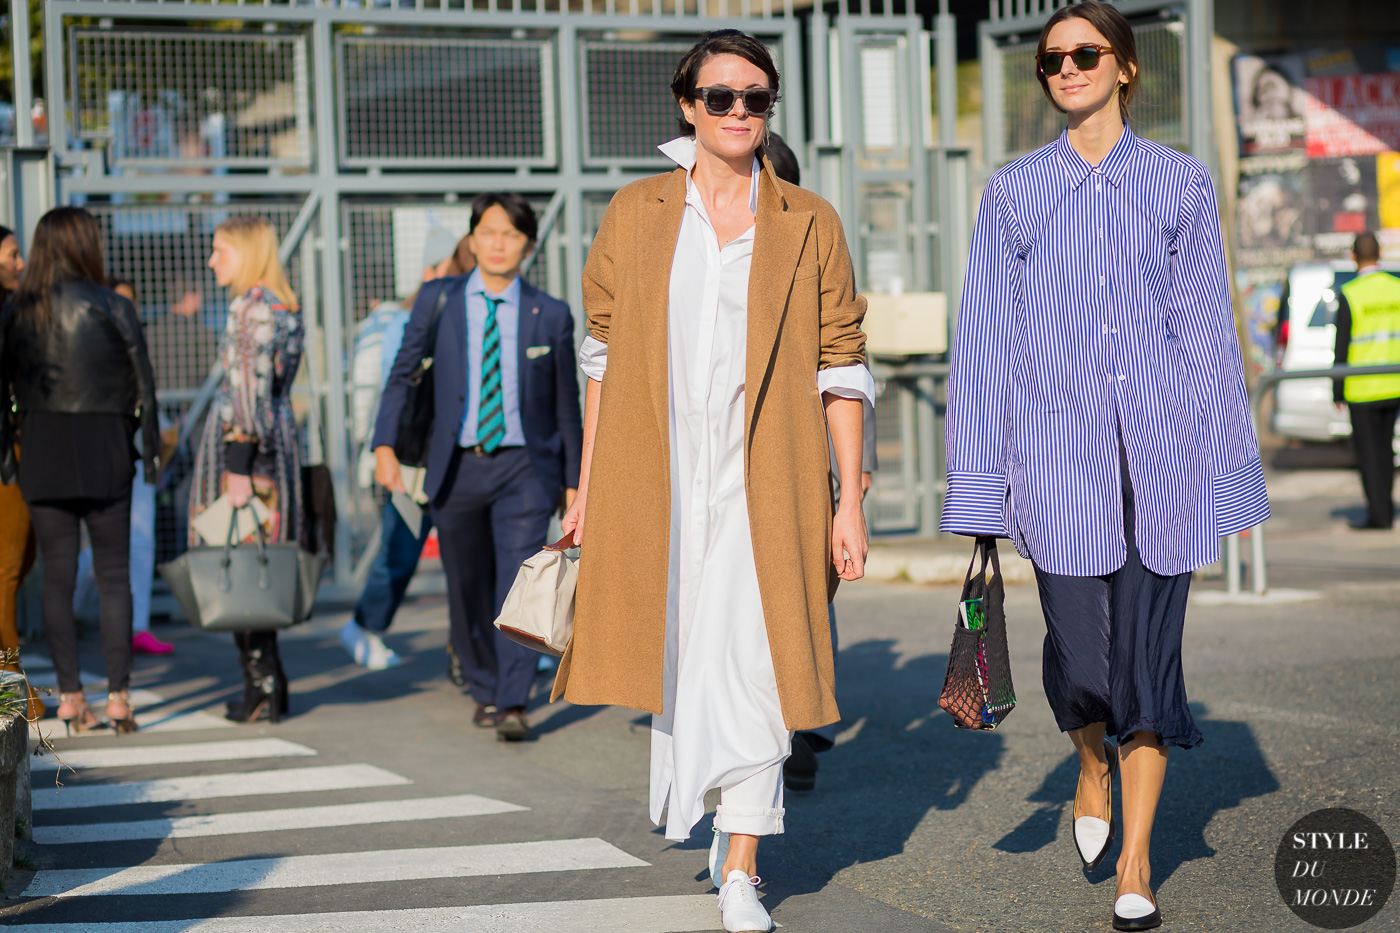 Garance Dore and Brie Welch Street Style Street Fashion Streetsnaps by STYLEDUMONDE Street Style Fashion Photography